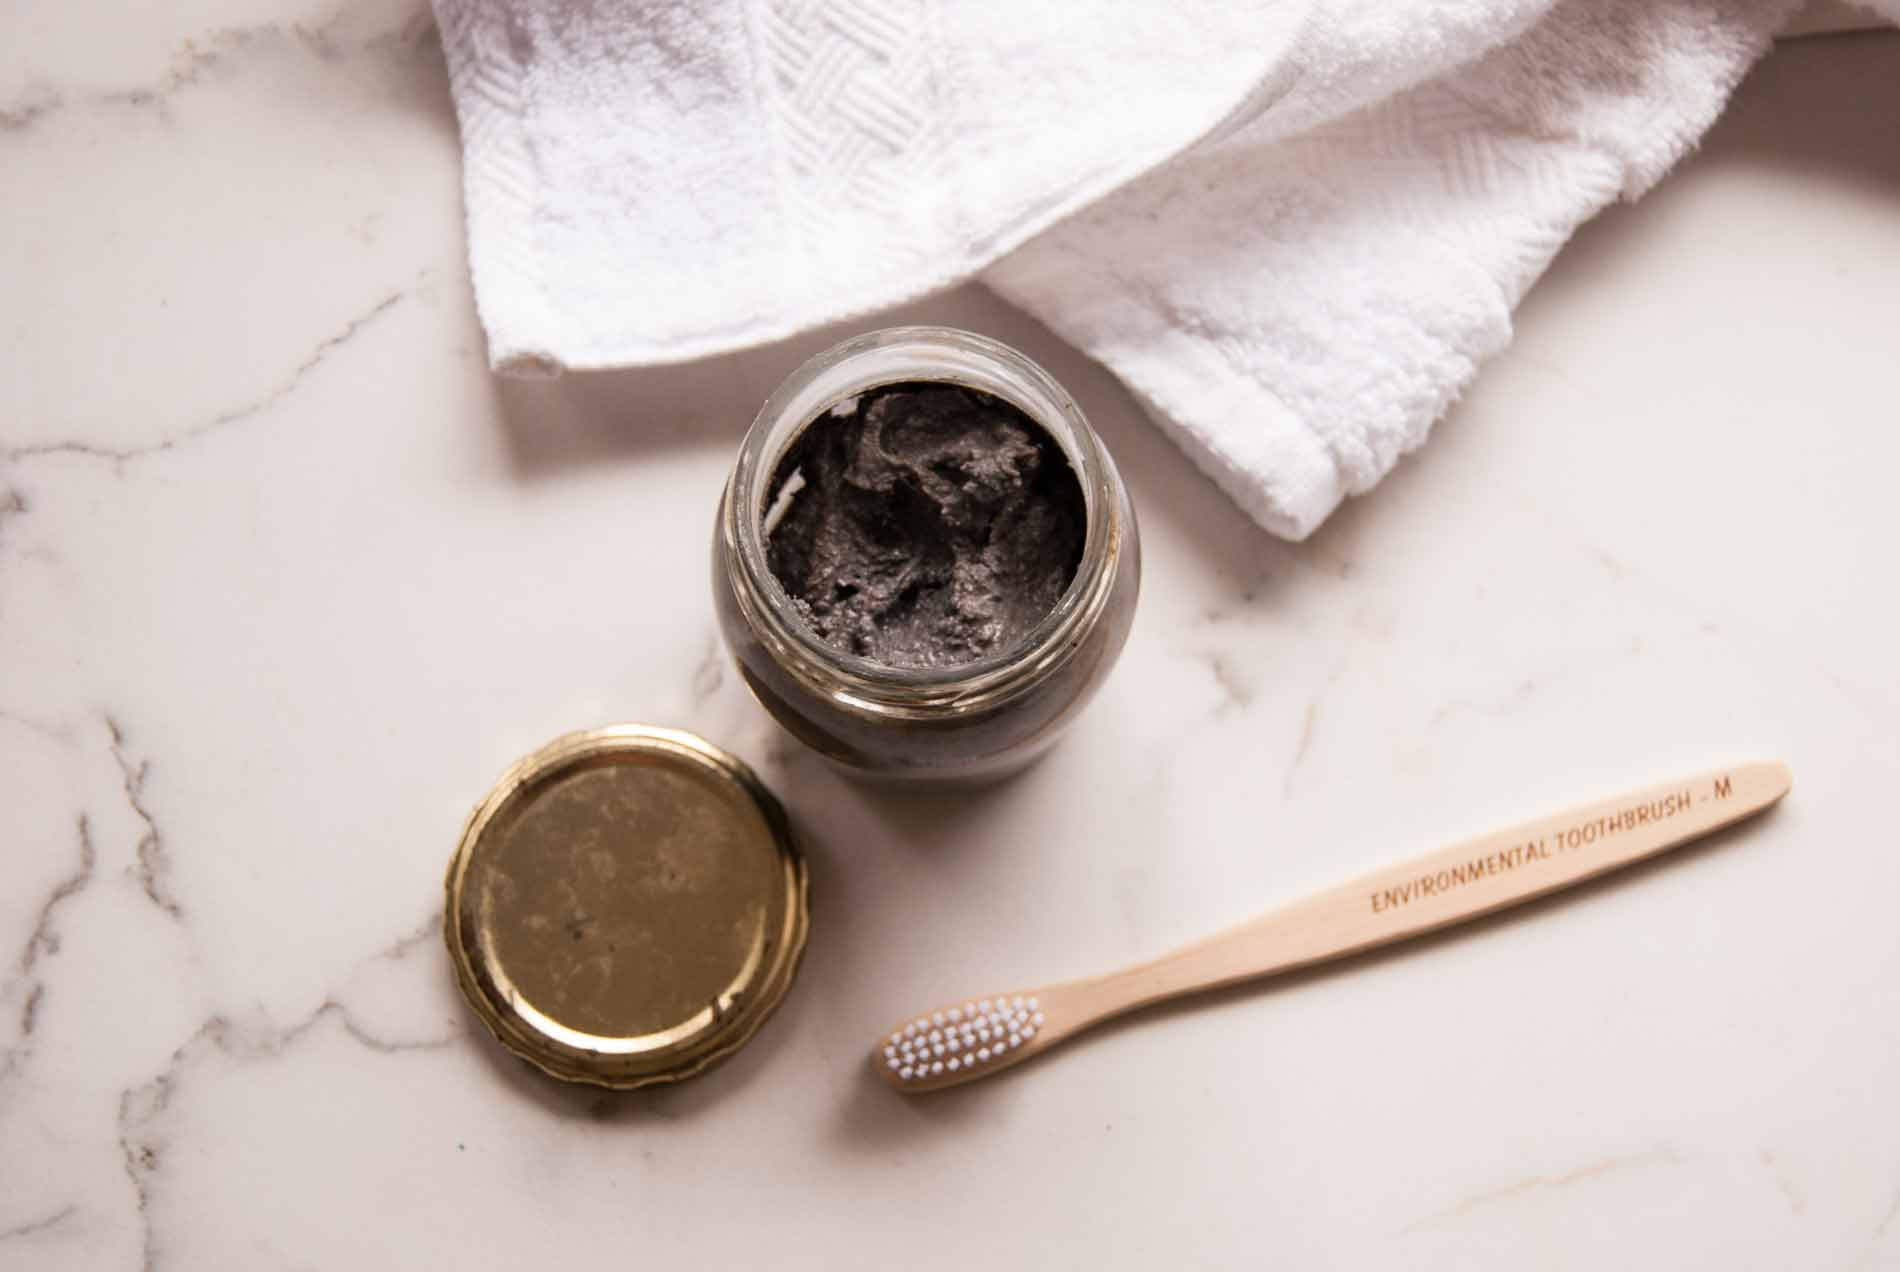 DIY Toothpaste with Faithful to Nature